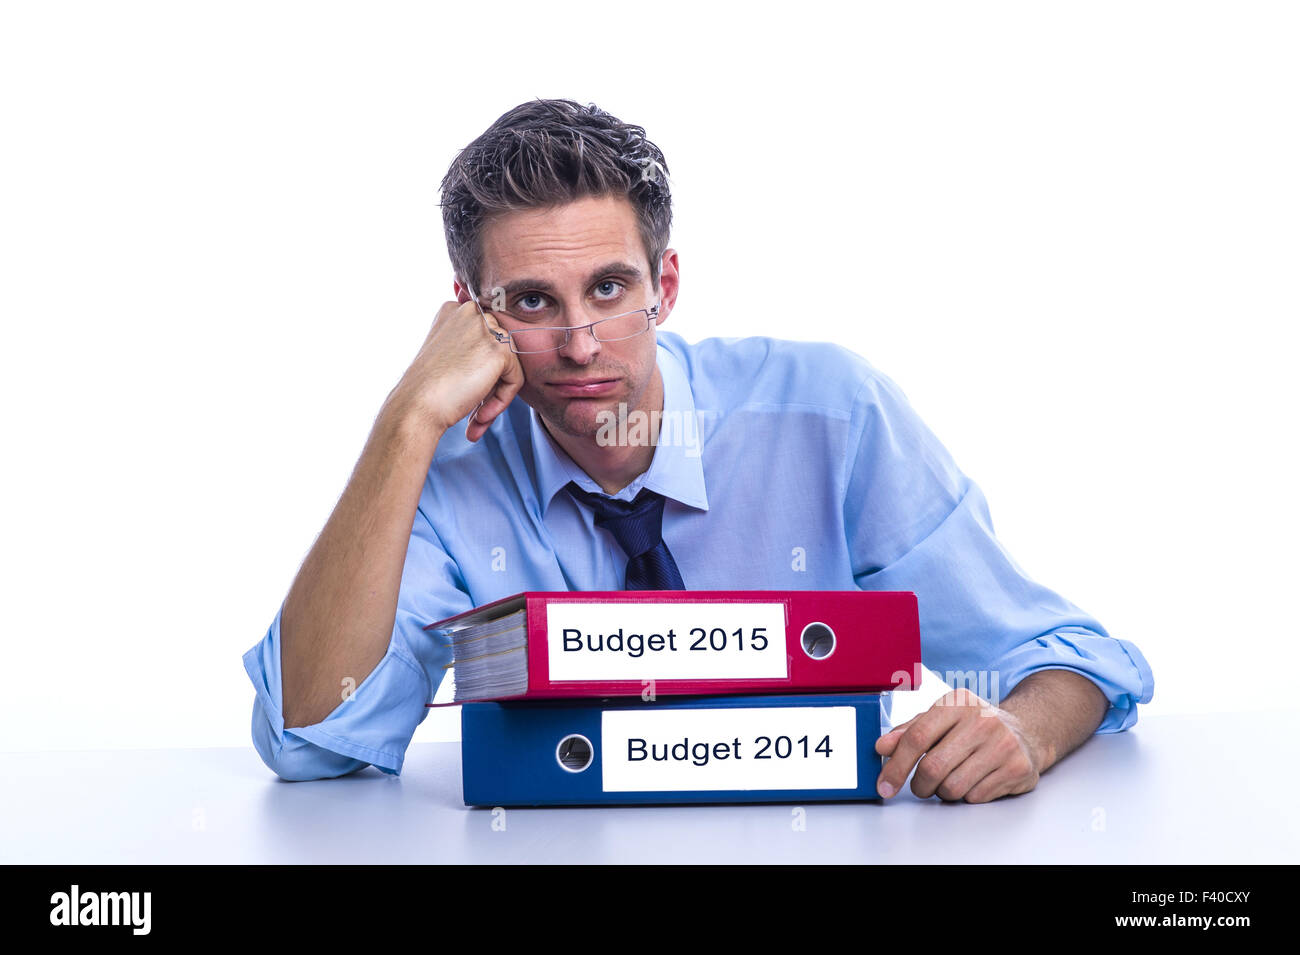 Budget 2014 and Budget 2015 - Stock Image